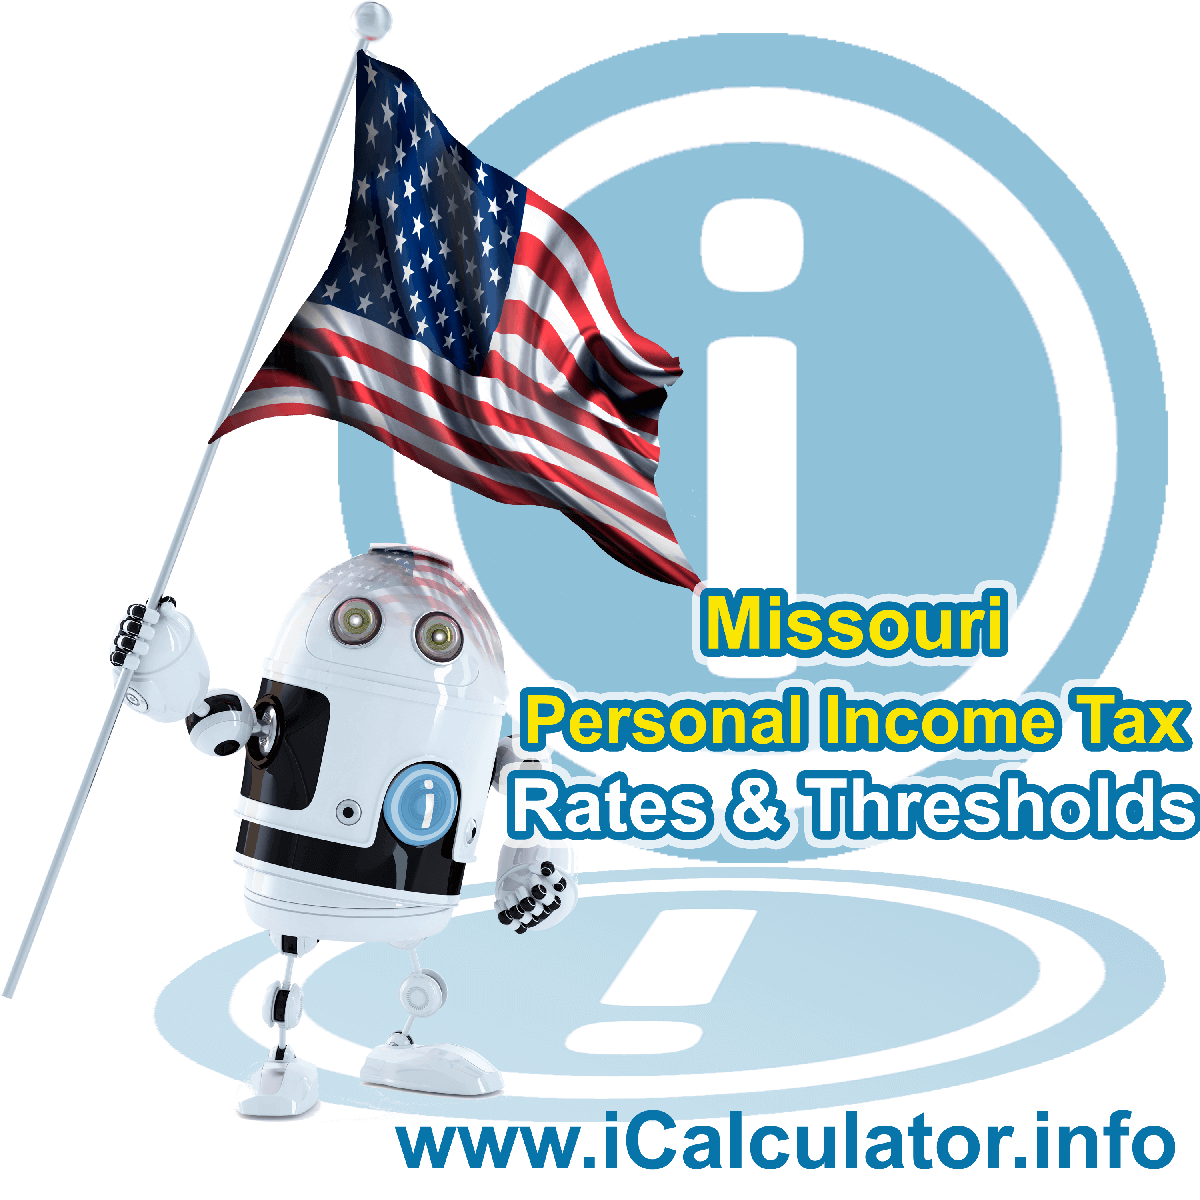 Missouri State Tax Tables 2019. This image displays details of the Missouri State Tax Tables for the 2019 tax return year which is provided in support of the 2019 US Tax Calculator